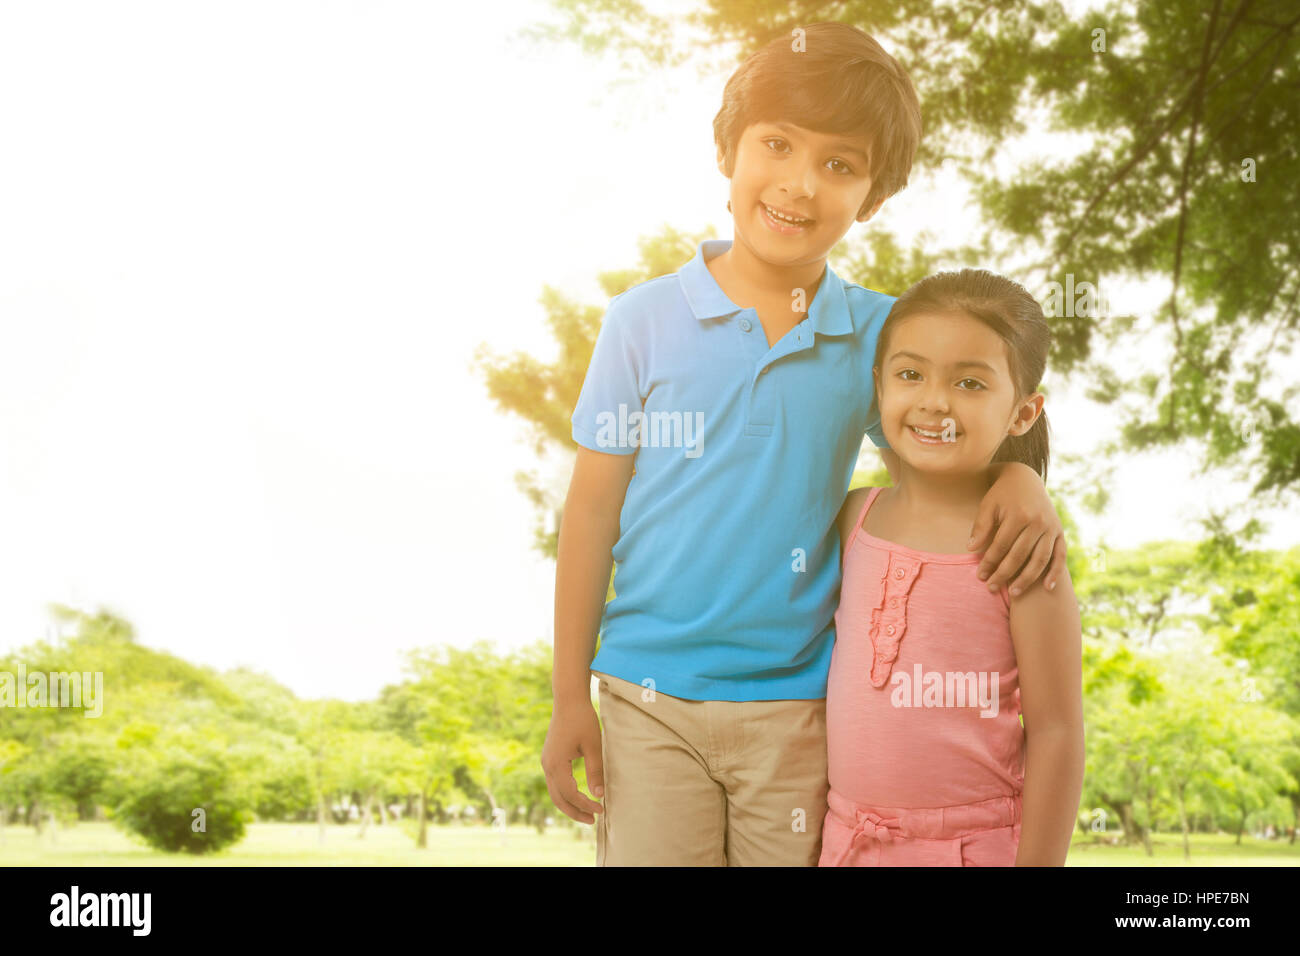 Portrait of brother and sister standing arm around in park - Stock Image